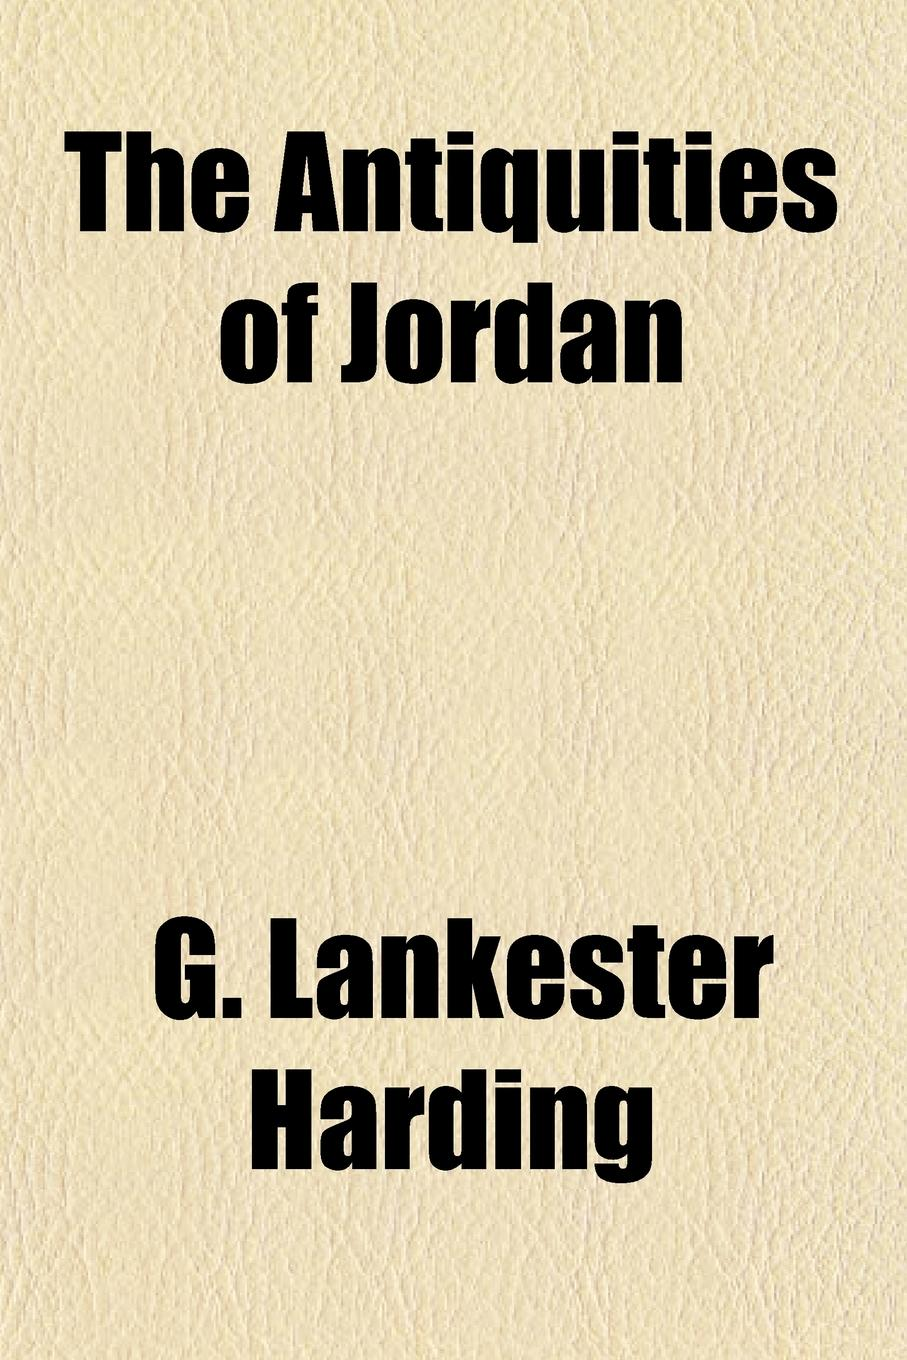 G. Lankester Harding The Antiquities of Jordan g lankester harding the antiquities of jordan